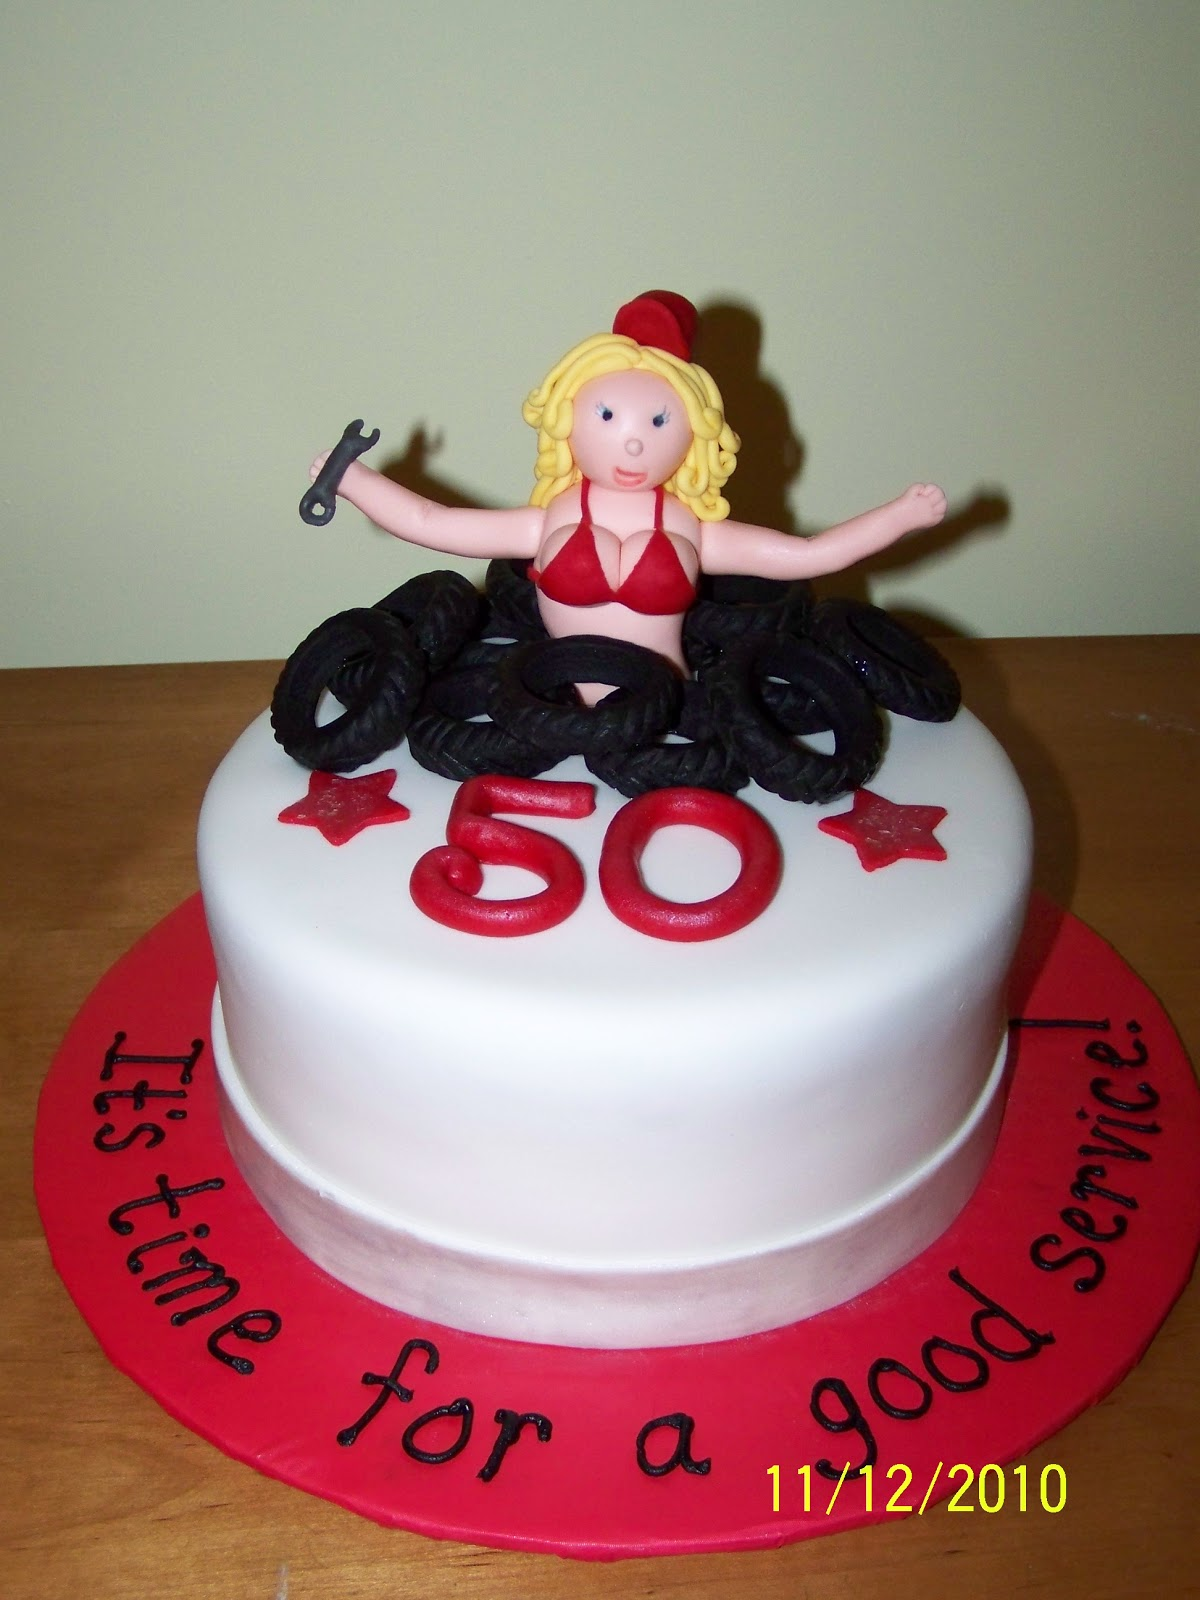 Birthday Cakes Images For 50 Year Old Woman : Cakes by Kristen H.: Man s 50th birthday cake